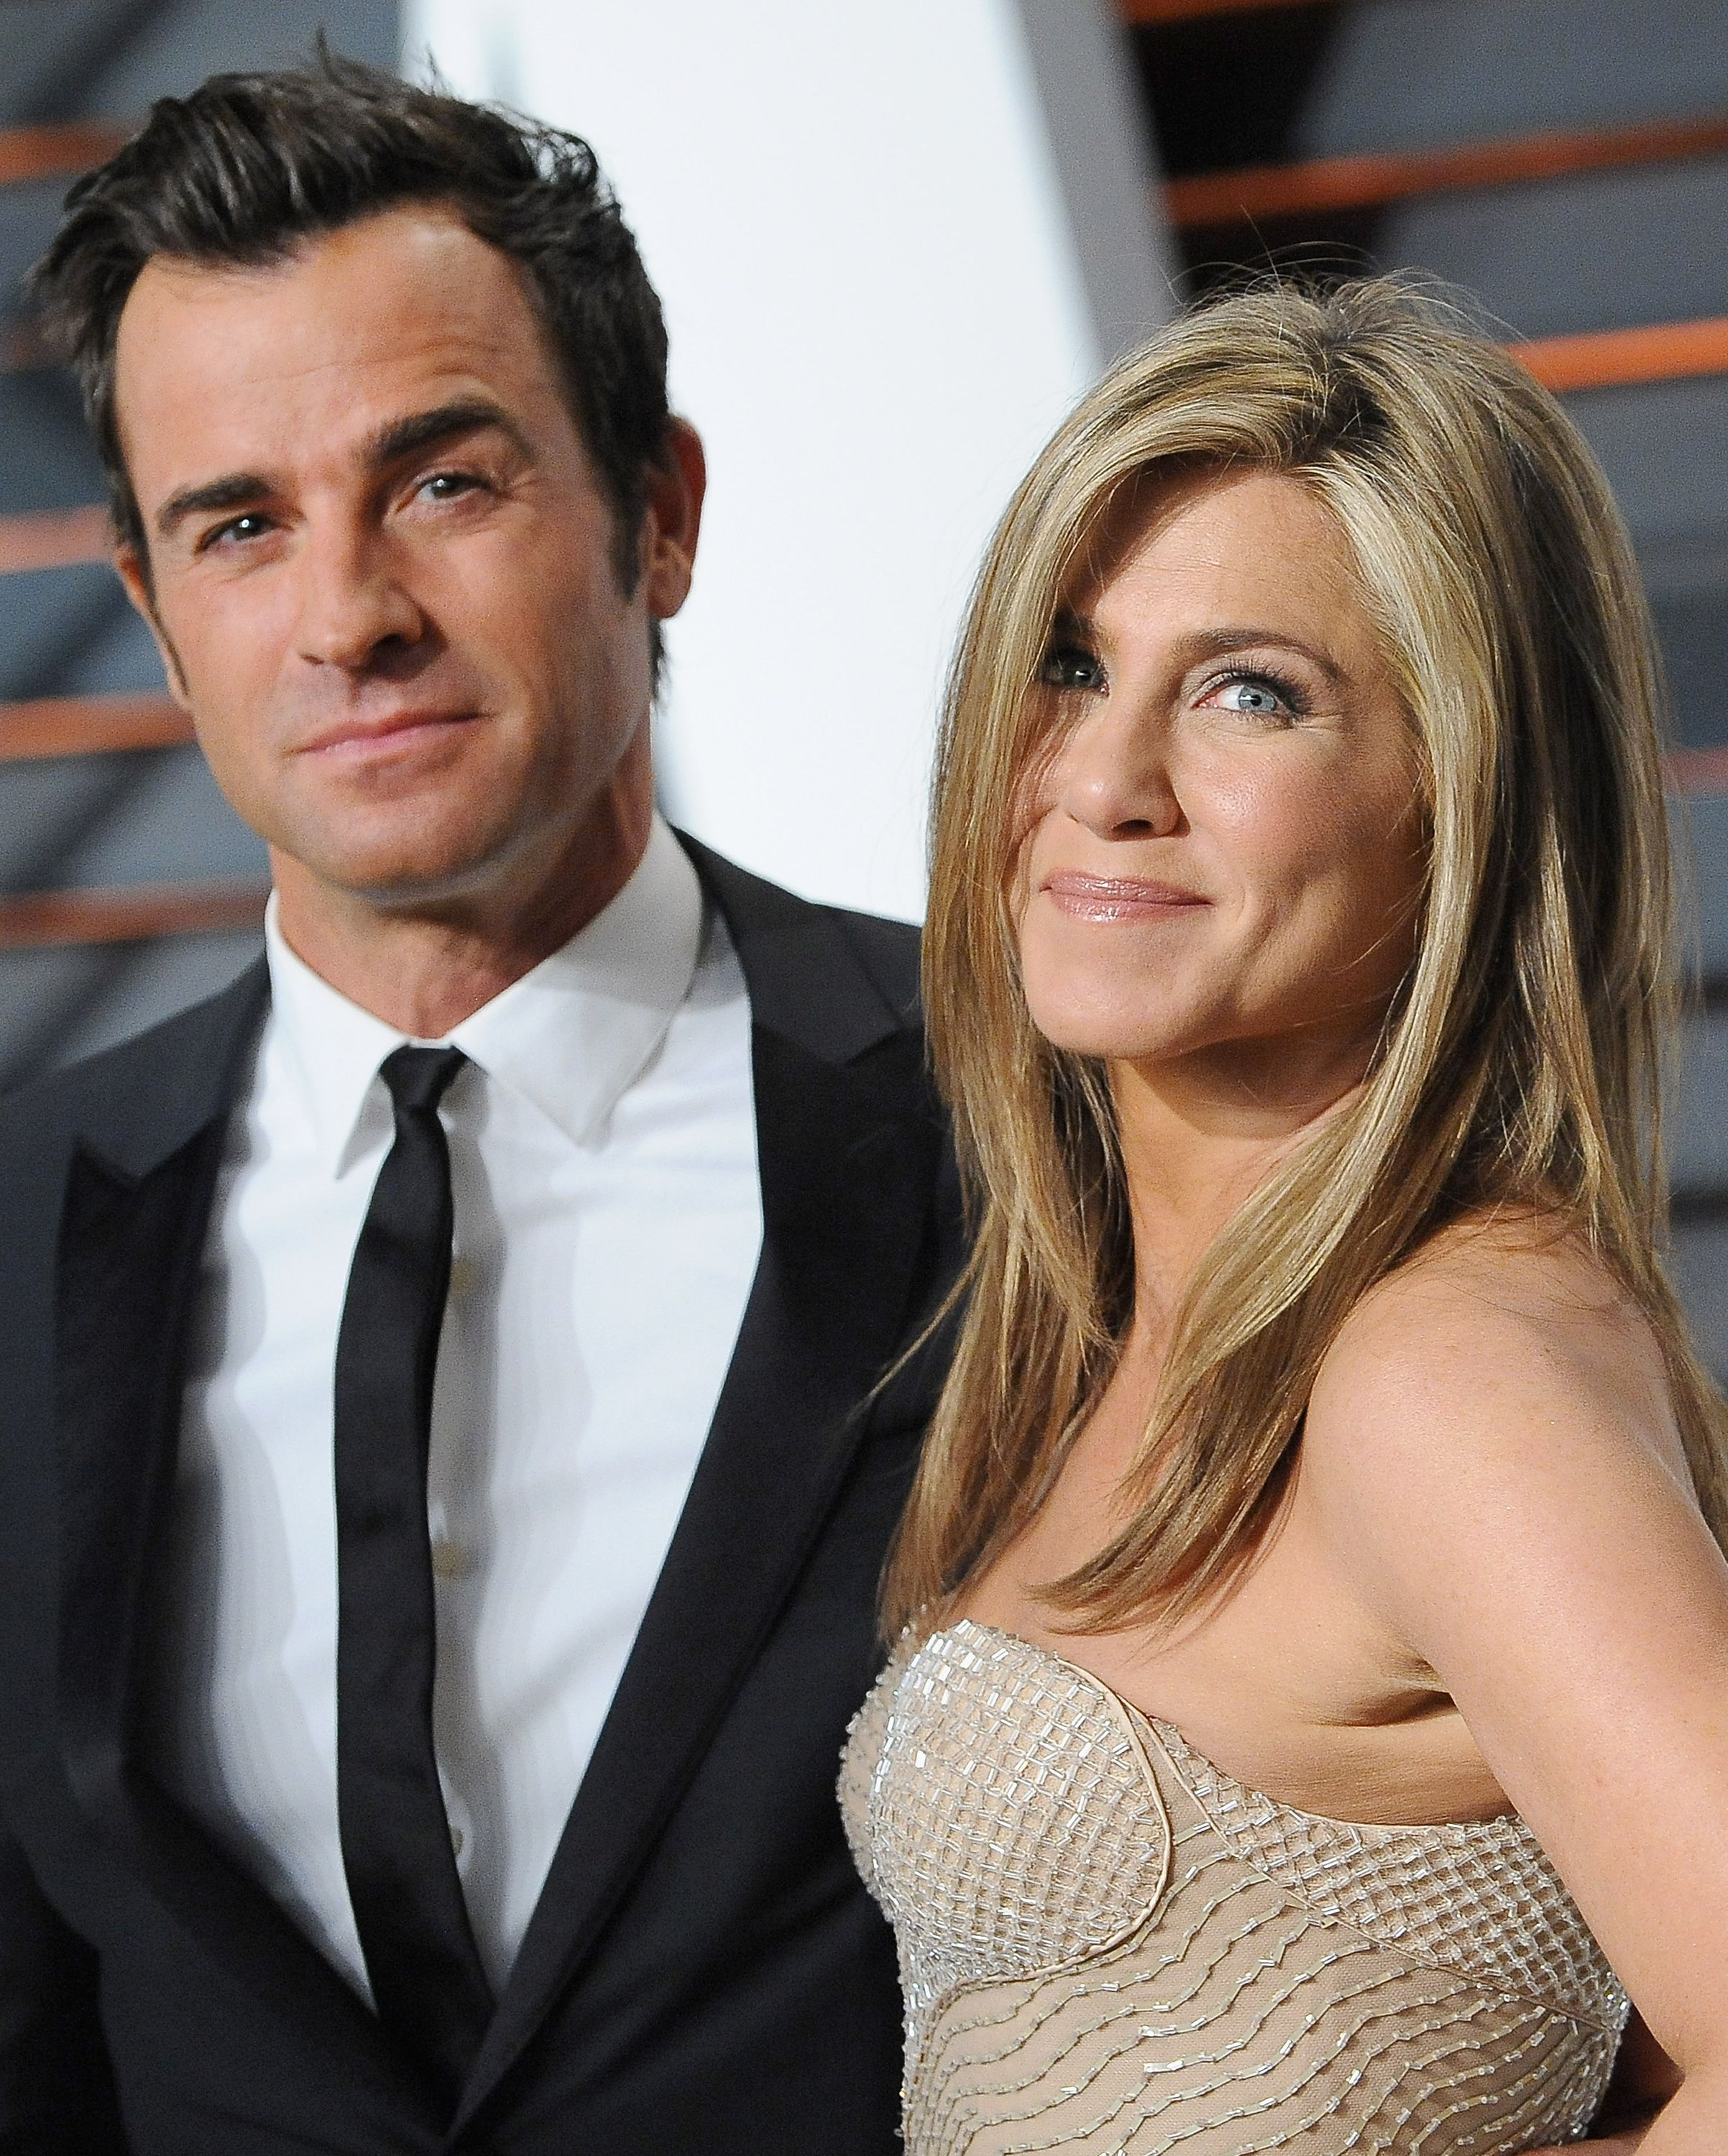 Jennifer Aniston and Justin Theroux The details here are a little murky but the actors definitely met in 2007 via Tropic Thunder, which Theroux co-write, either through mutual friends Robert Downey Jr. or Ben Stiller , though they didn't start dating then. Aniston and Theroux reconnected in 2010 and had a long love affair before calling it quits in early 2018 after two years of marriage.